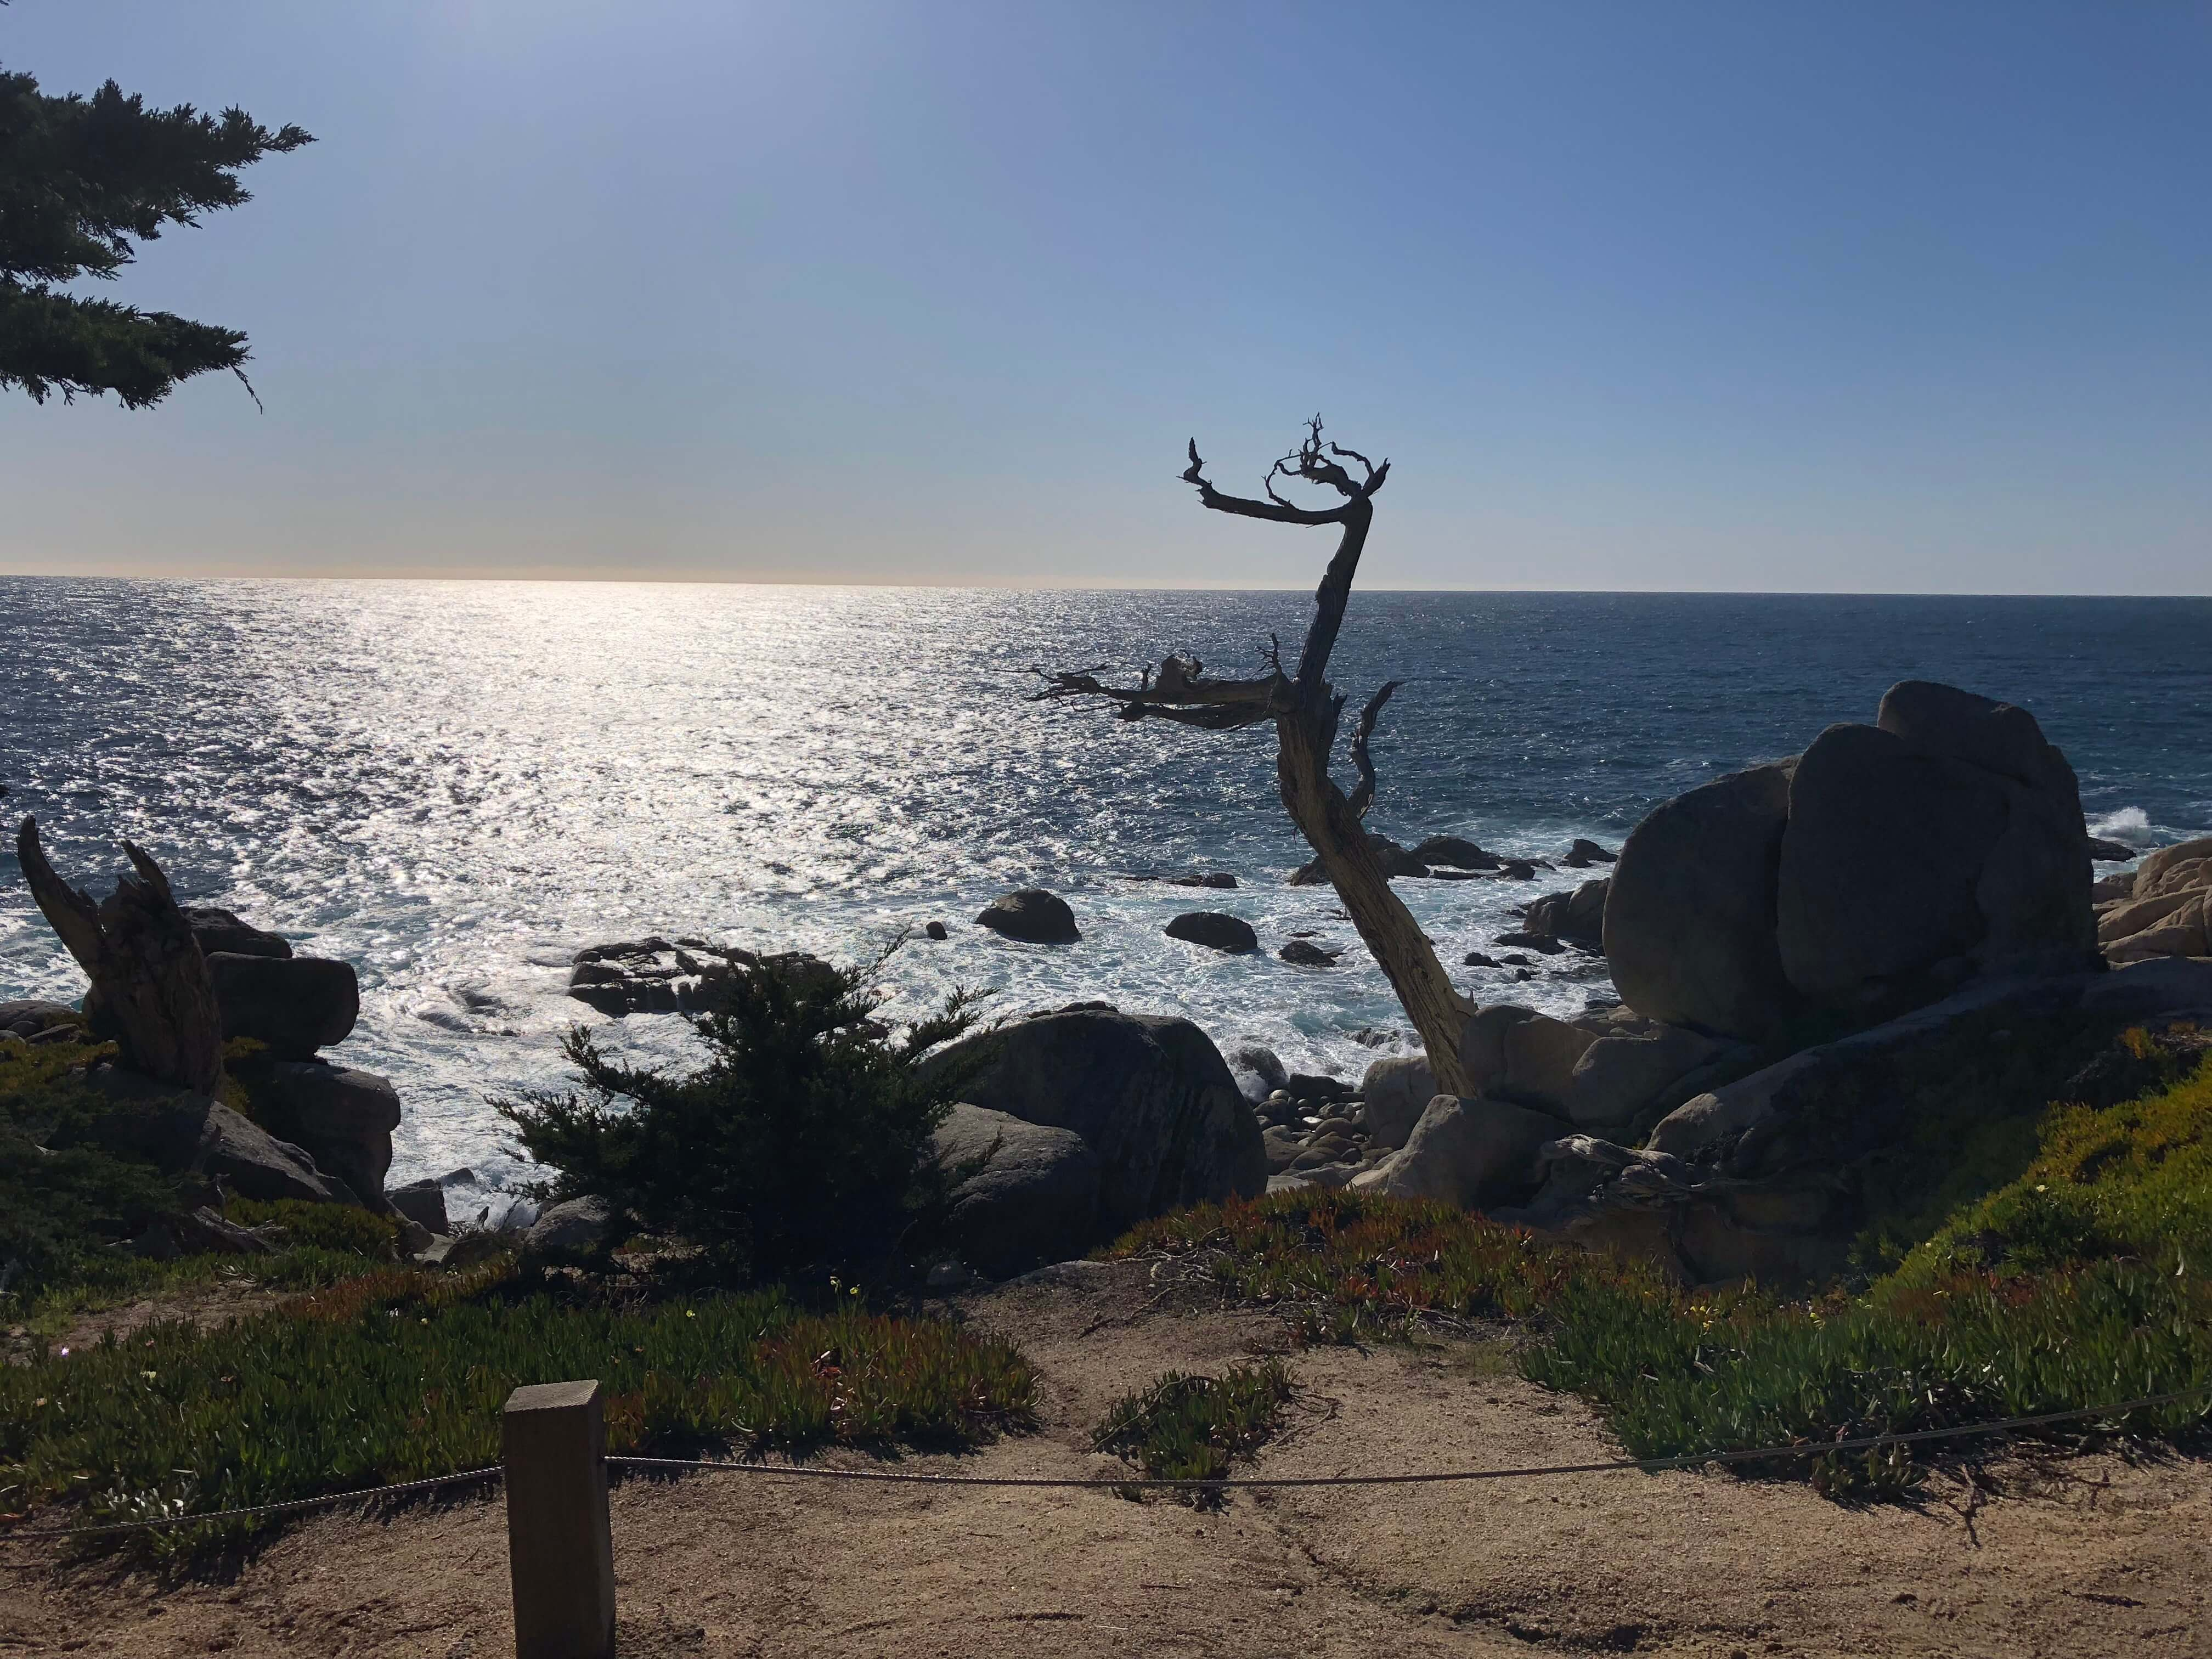 17-Mile Drive carmel-by-the-sea